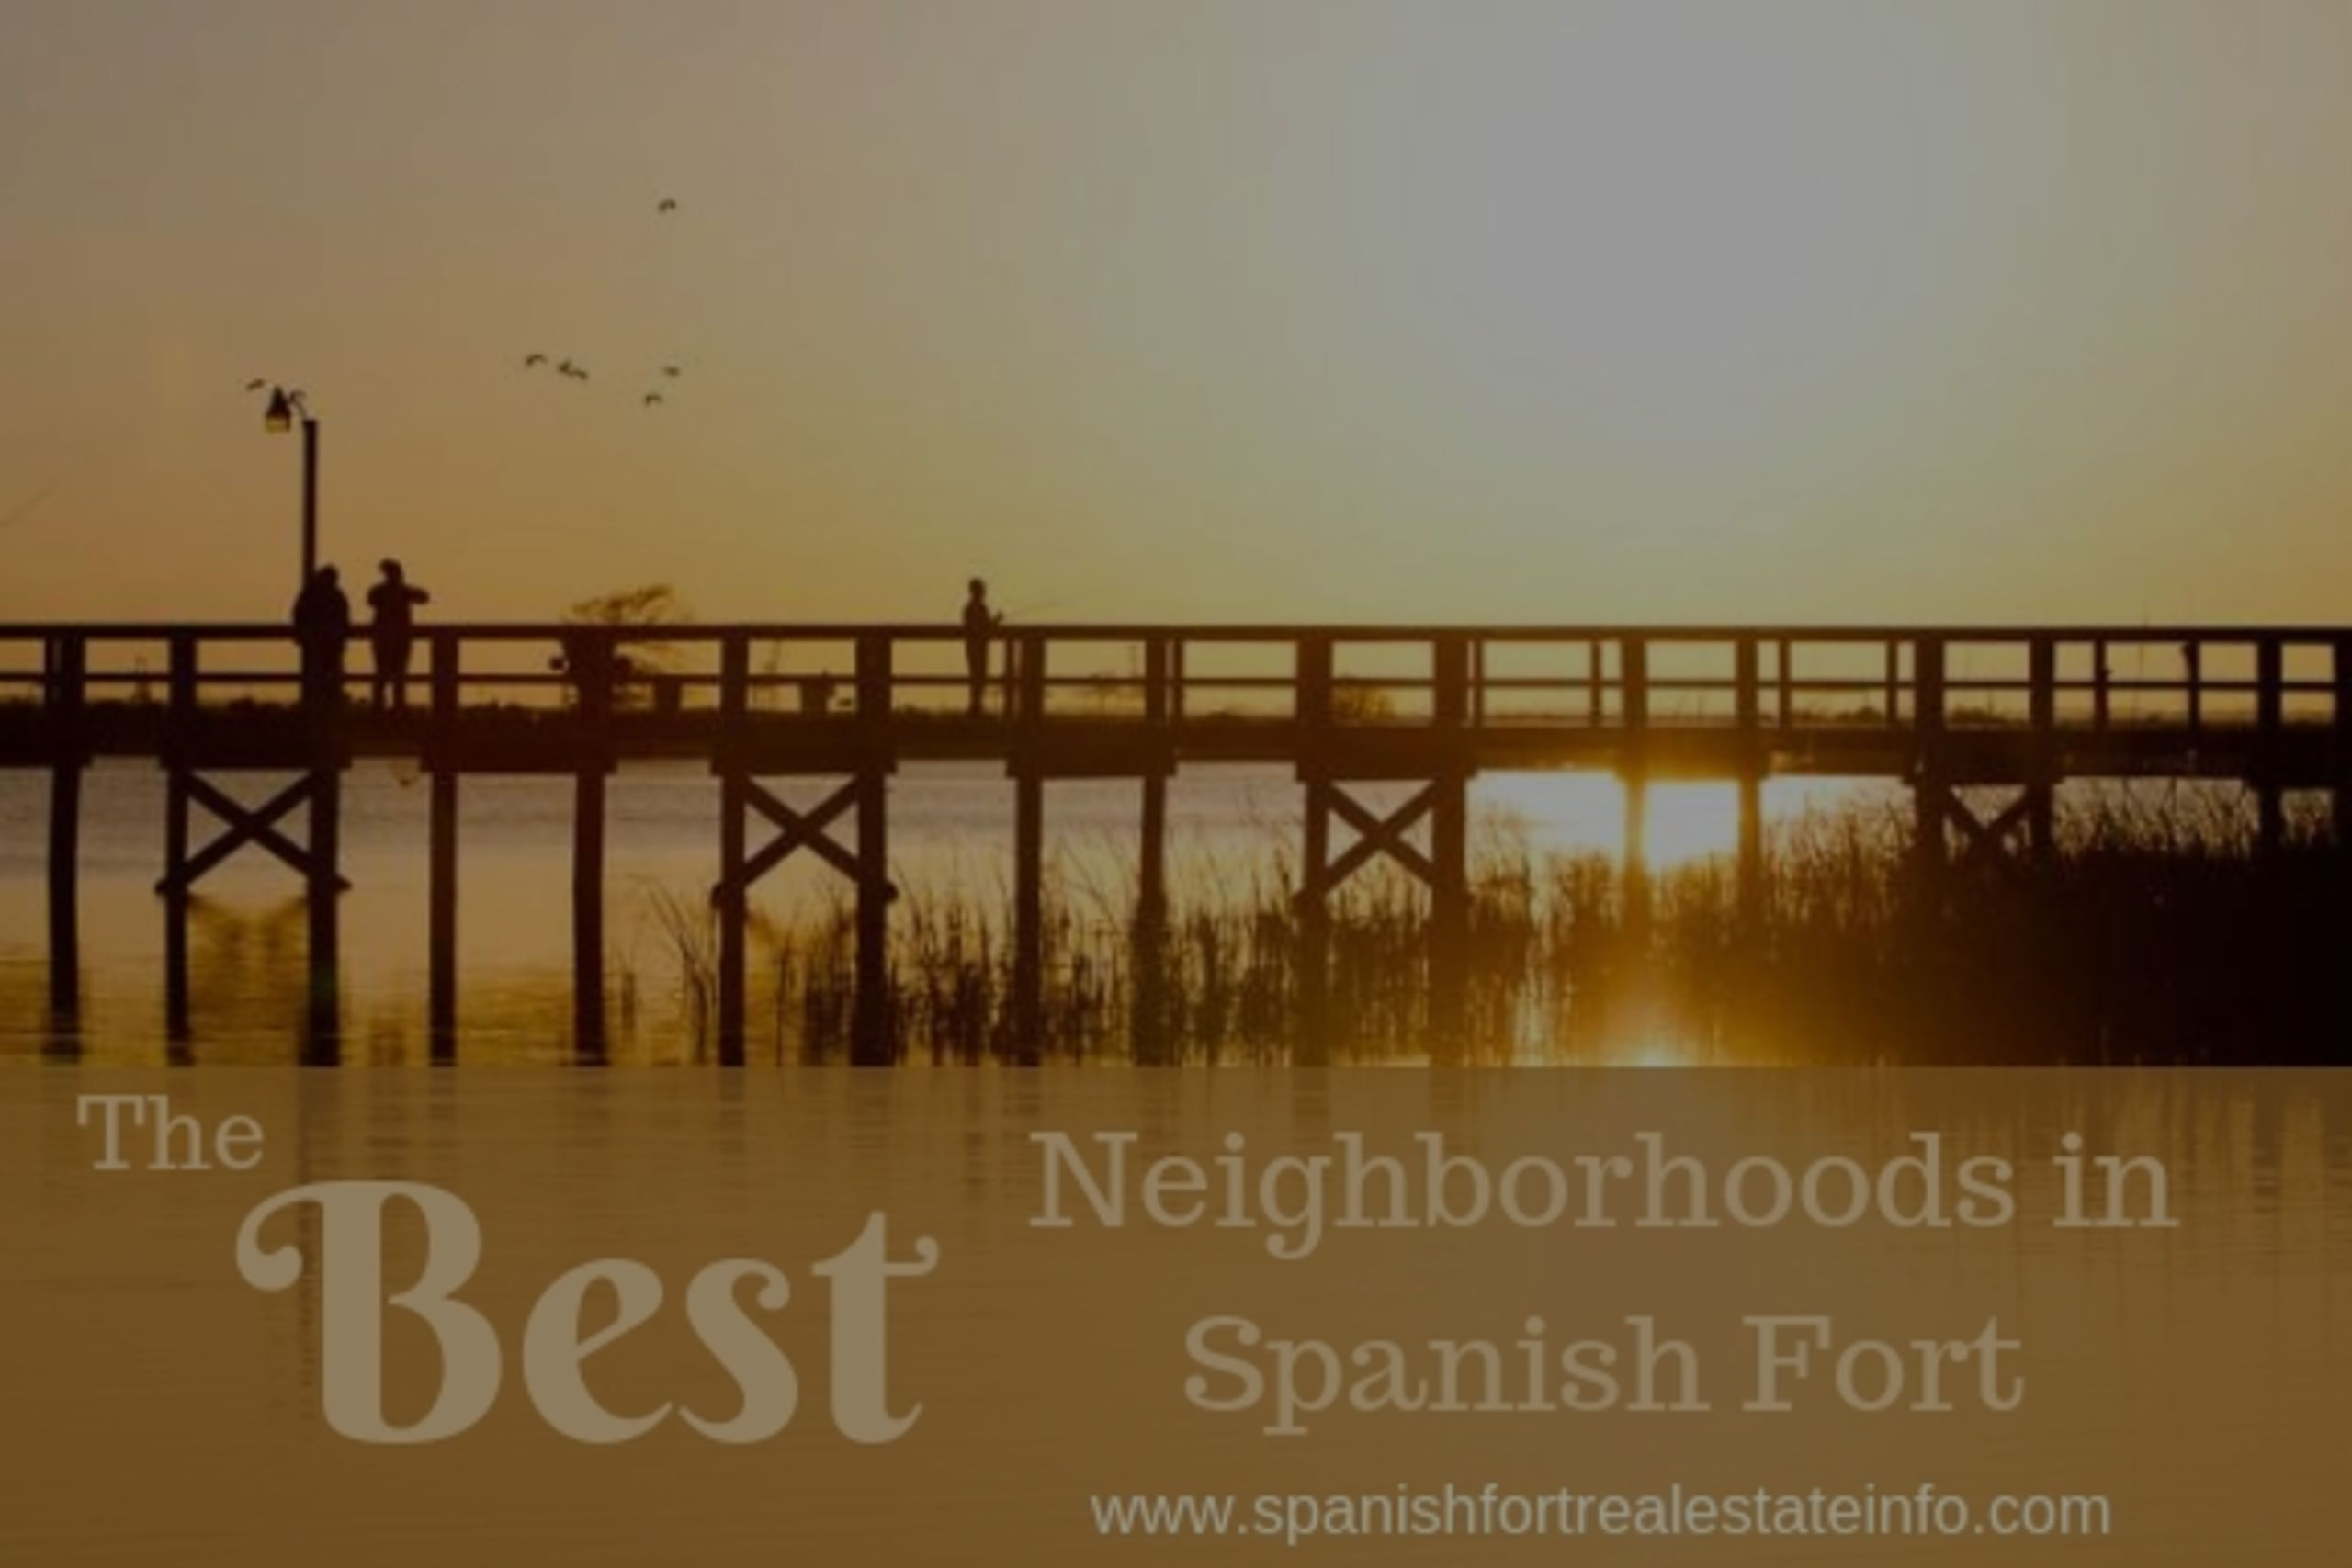 Best Selling Neighborhoods in Spanish Fort – Summer 2018